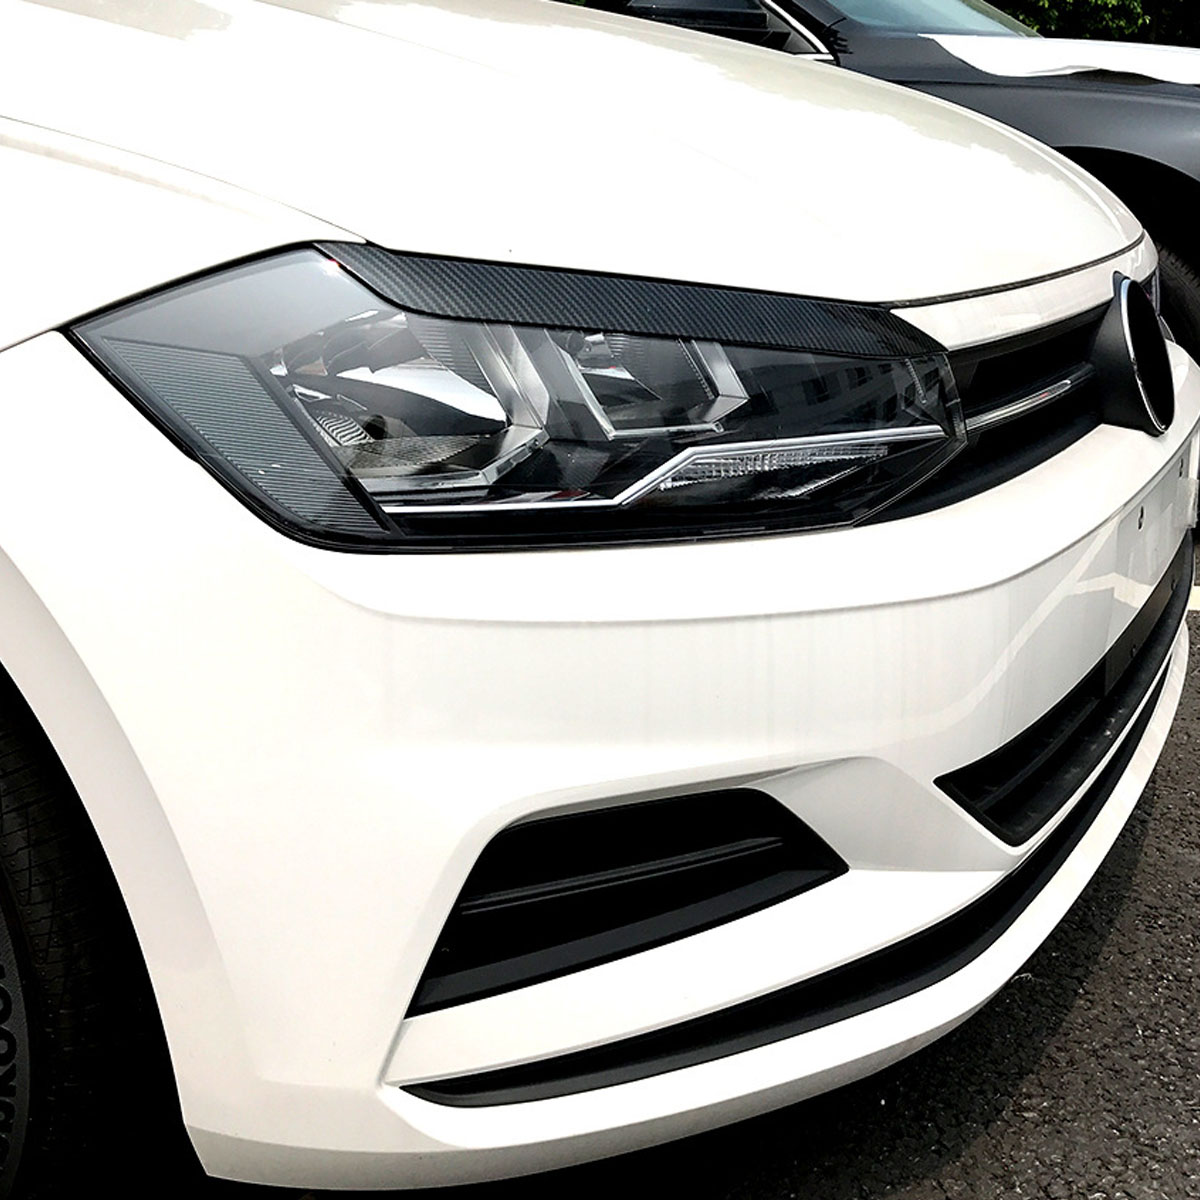 Pair Car Headlights Eyelids Eyebrow ABS Trim Stickers Cover For VW for Polo 2018+ Accessories Car Styling CarbonLook/GlossBlack|Car Stickers| |  -